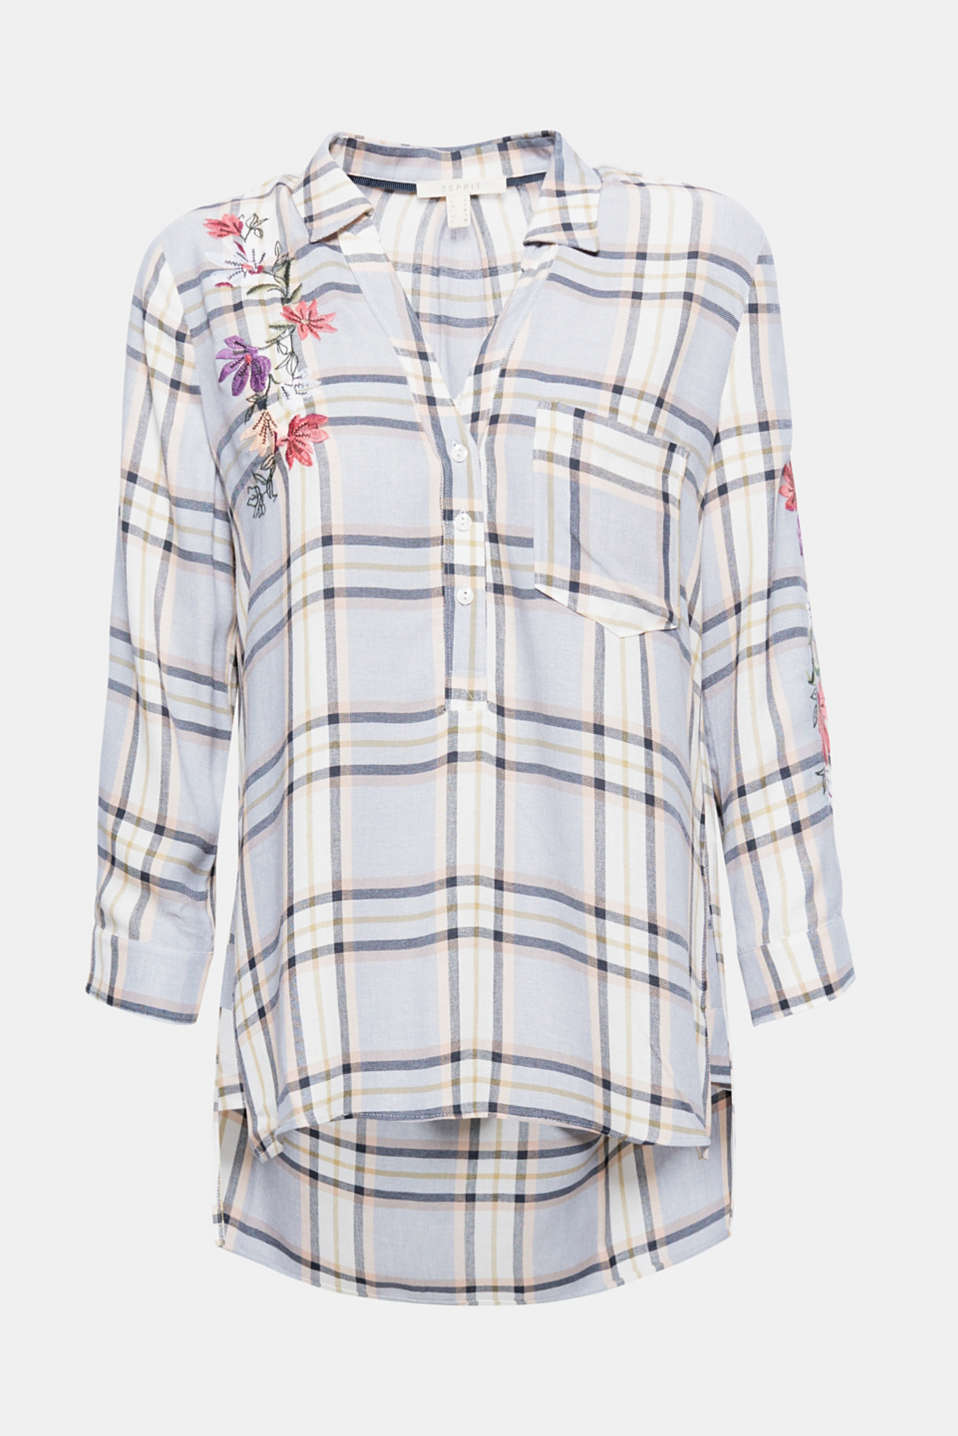 Casual checks, feminine embroidery: the check pattern and decorative flower combo gives this blouse its wow factor.